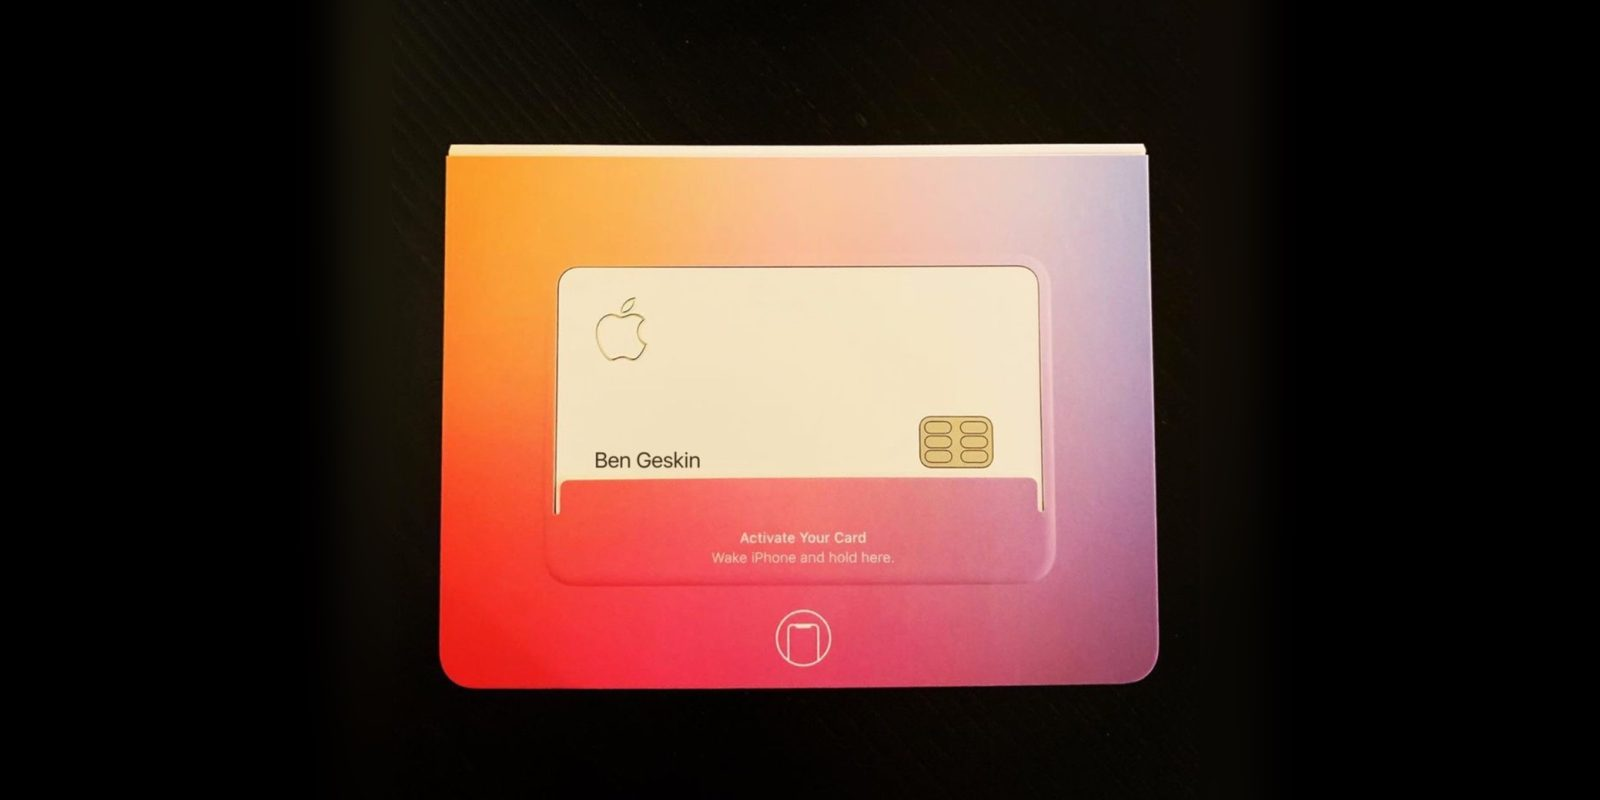 Apple Card users can't Jailbreak iPhone